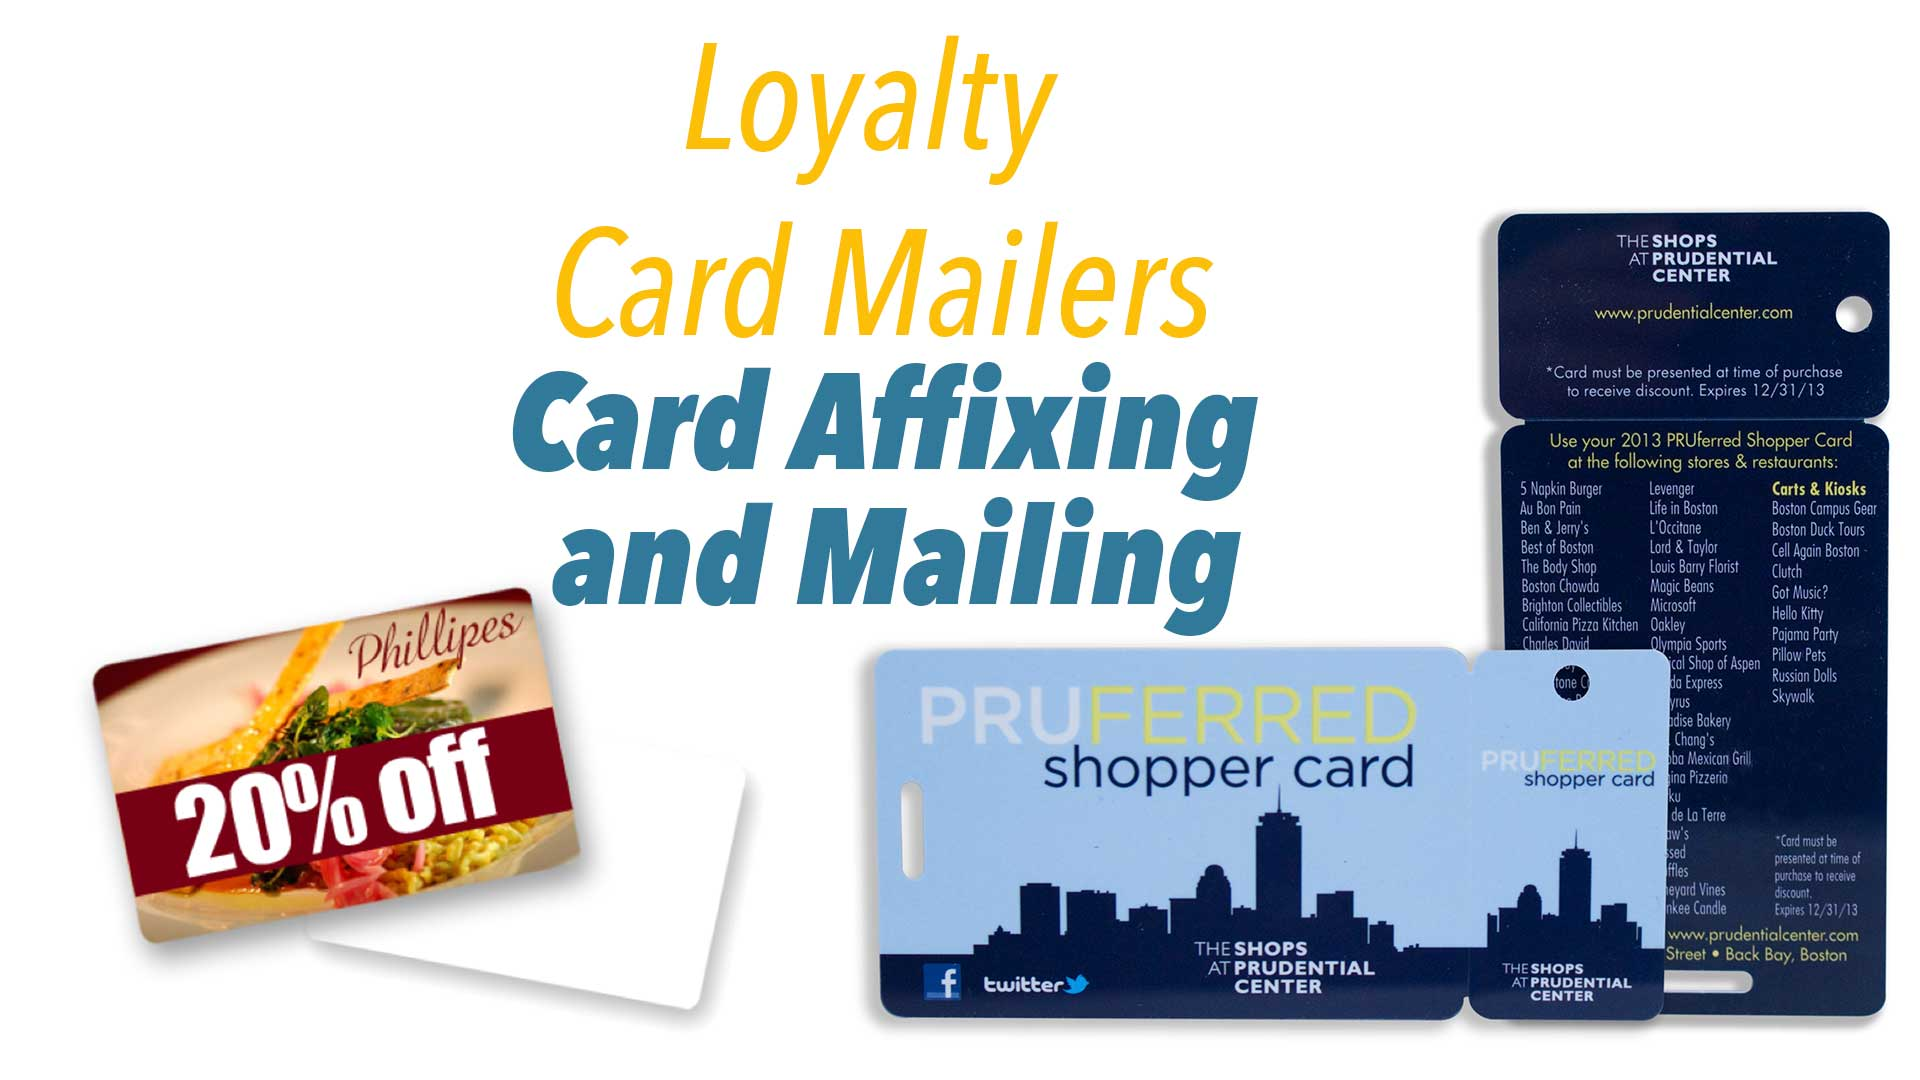 Loyalty Card Mailers